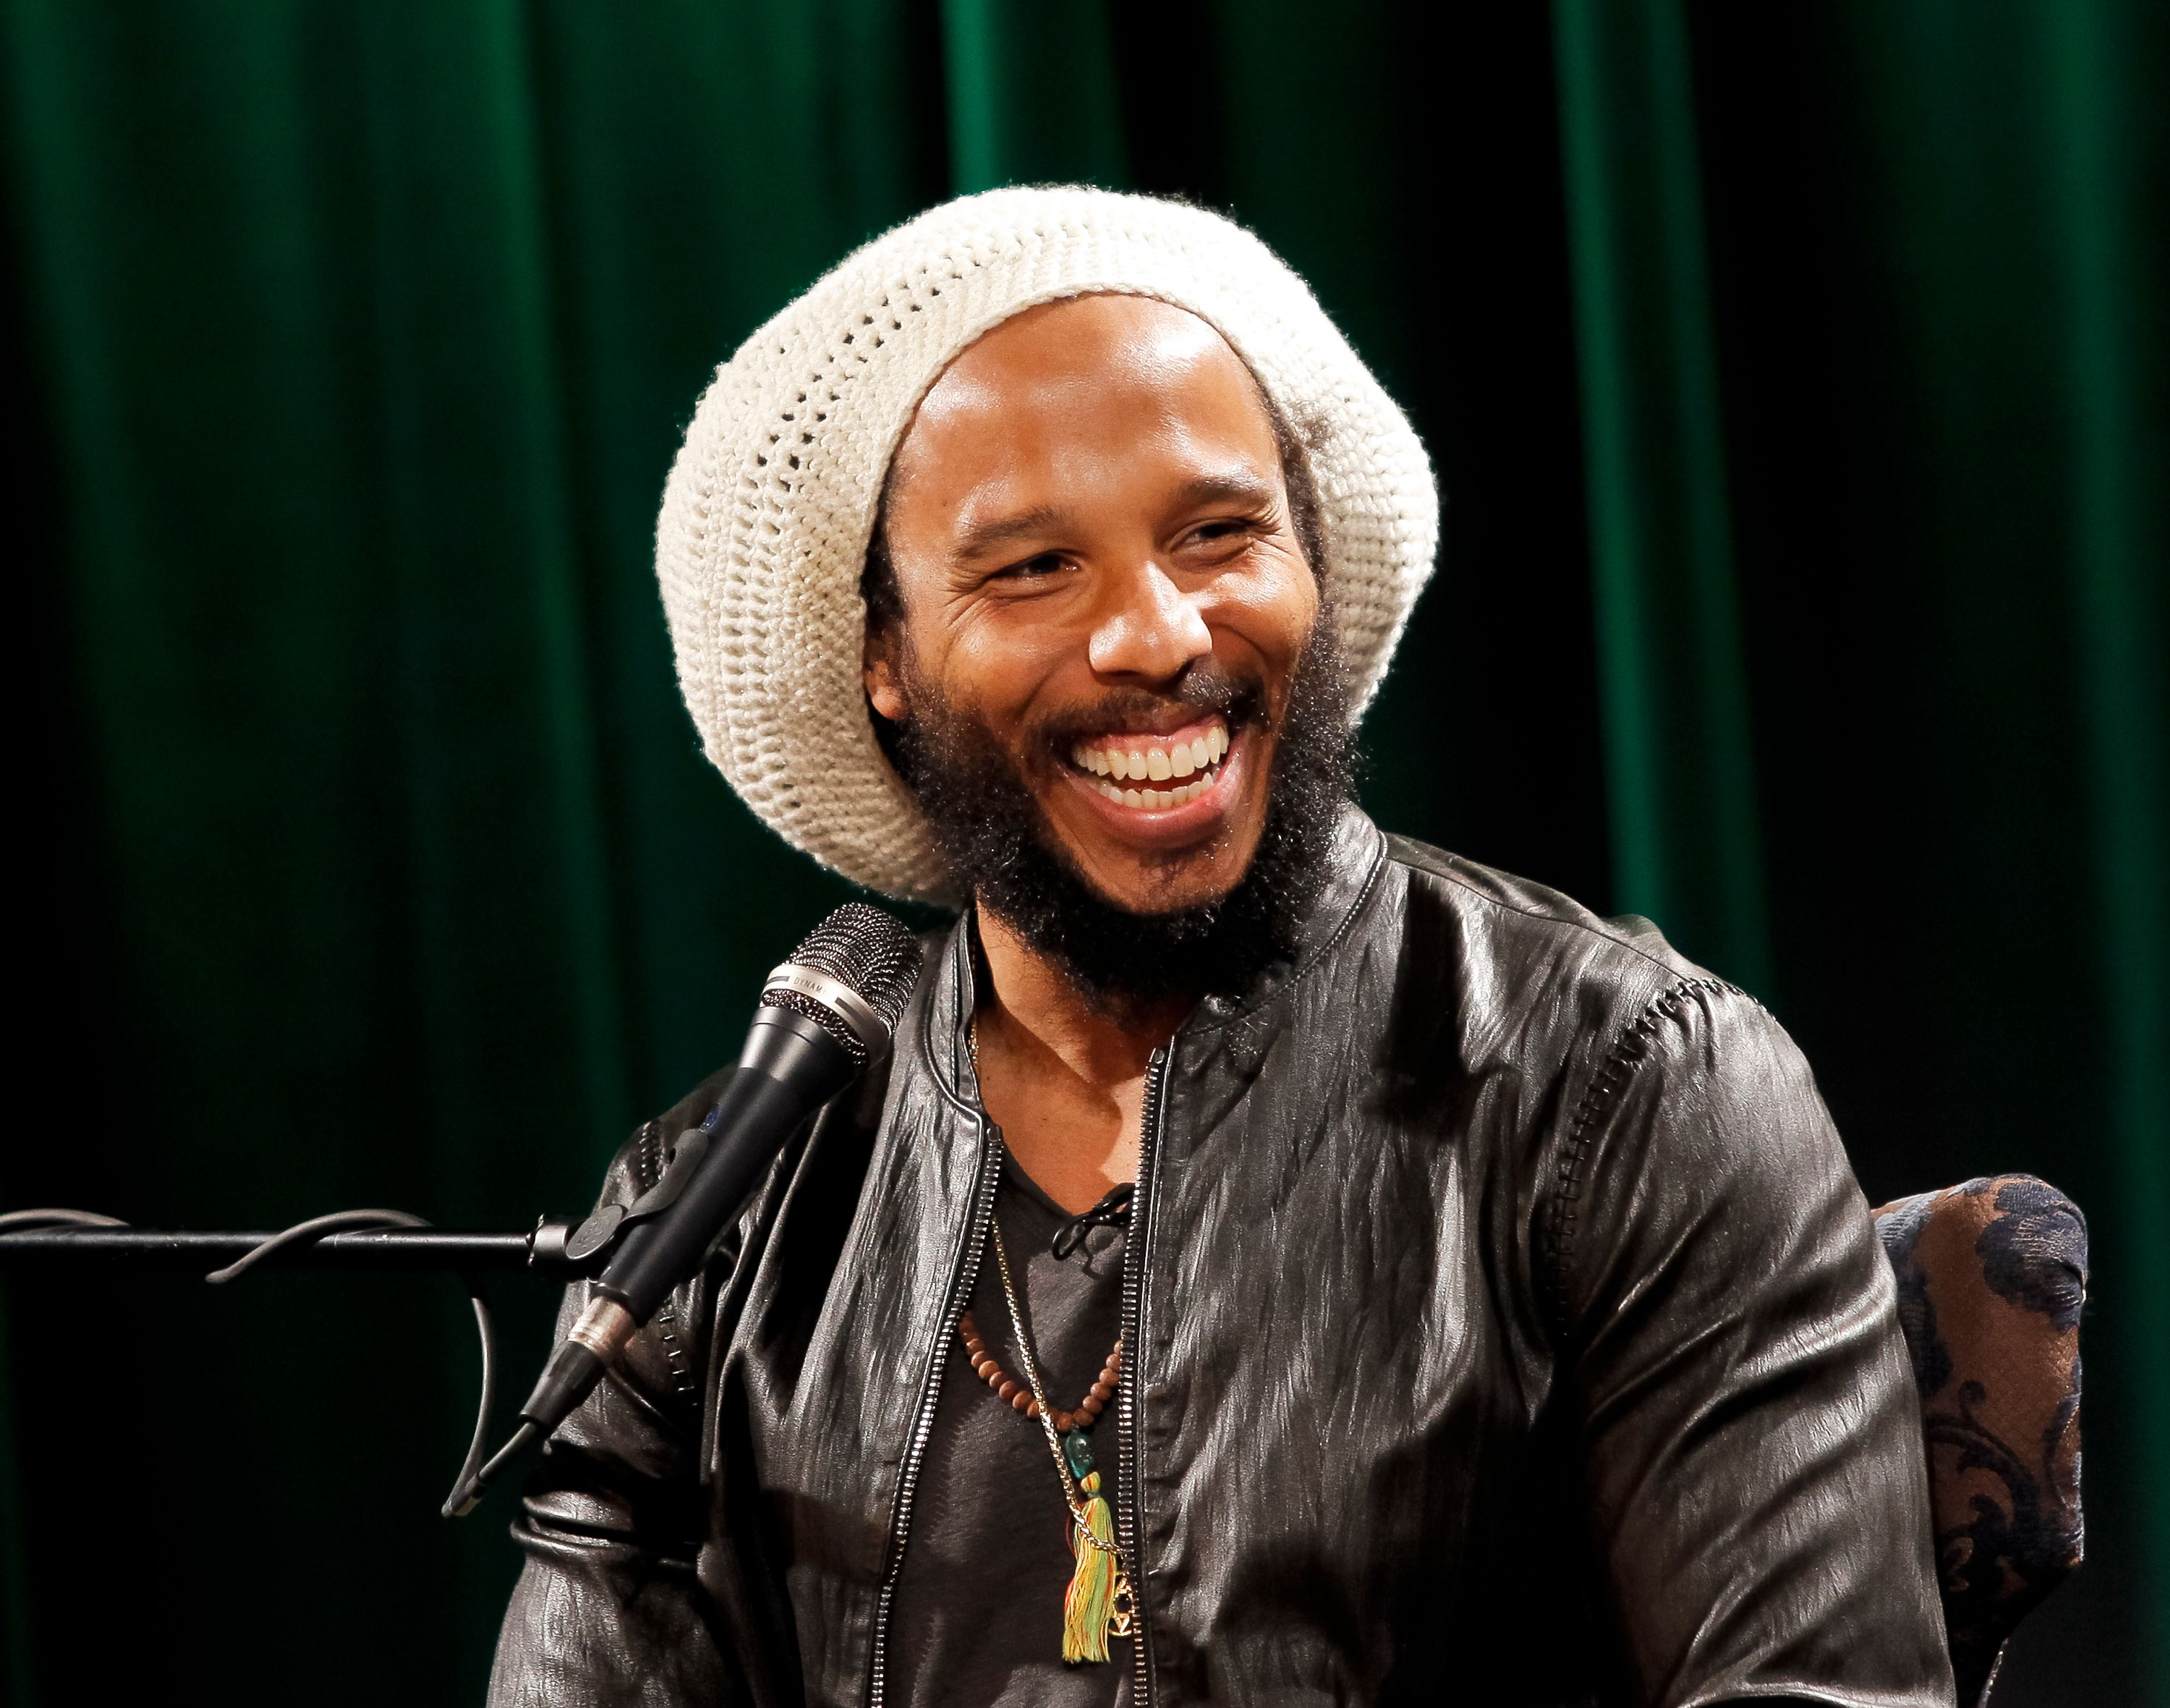 """Ziggy Marley at the Q&A and screening for the film """"Bob Marley & The Wailers: Easy Skanking in Boston '78"""" on February 18, 2015  